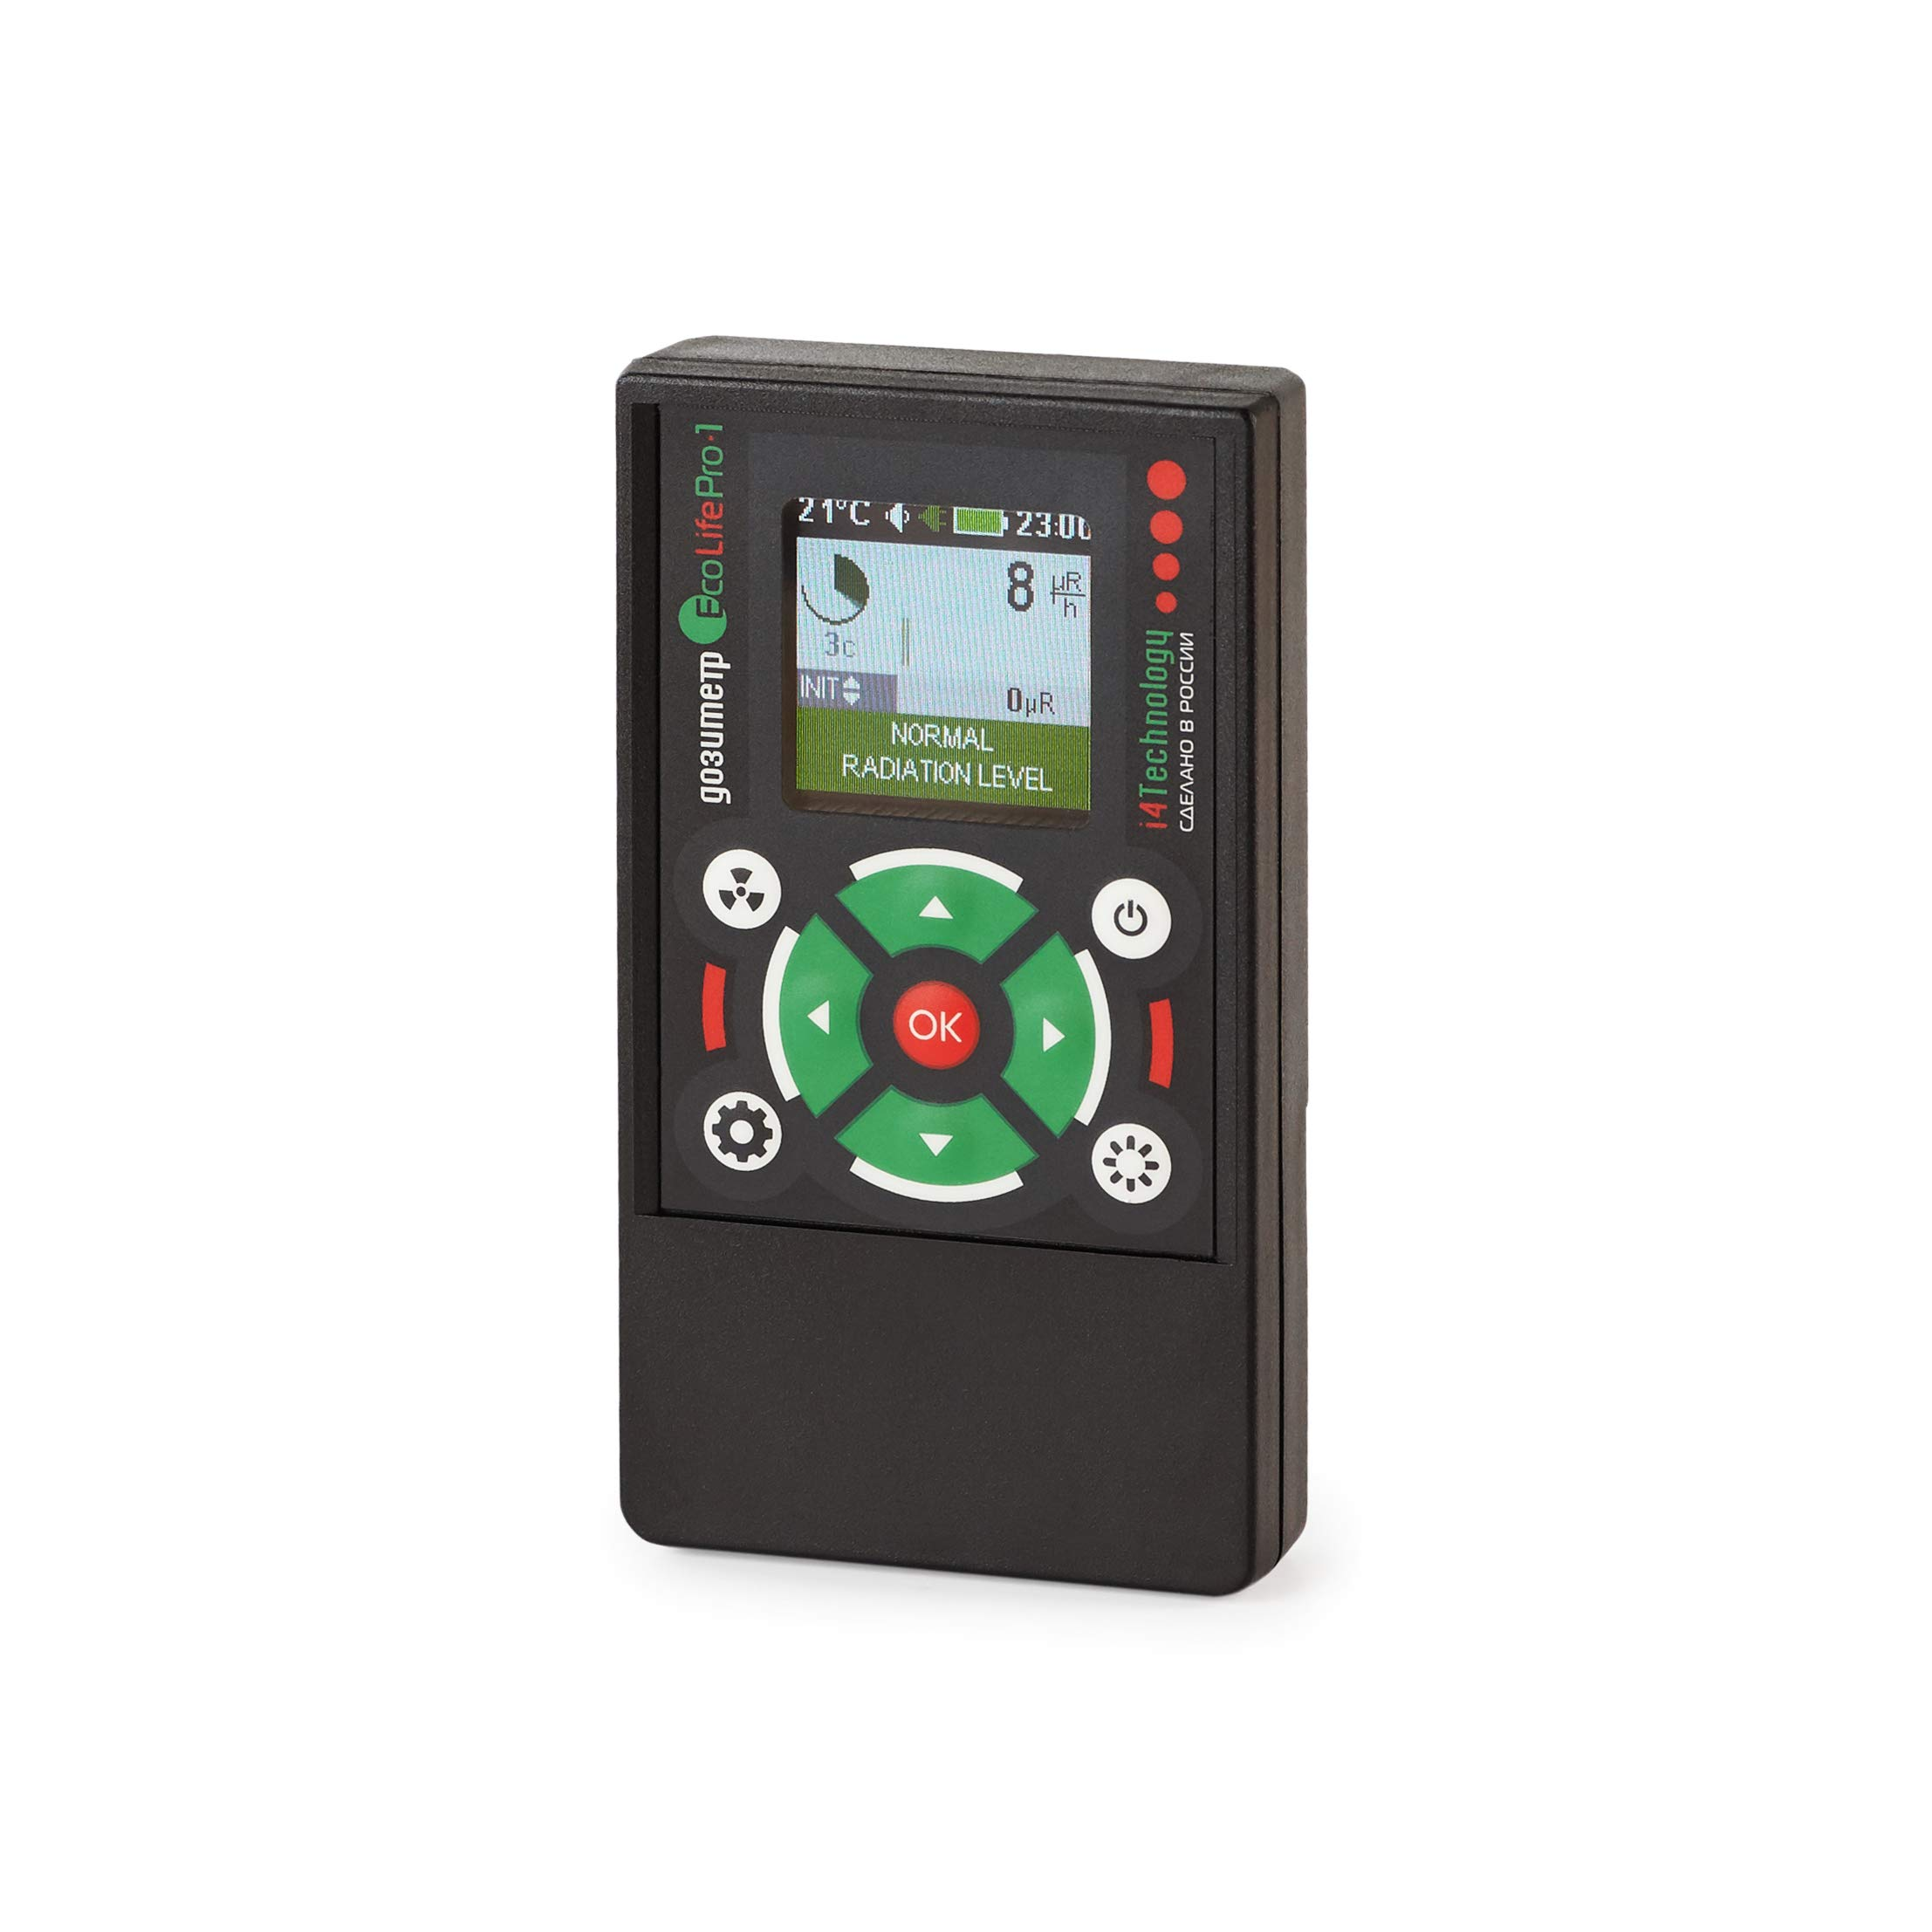 High Accuracy geiger Counter Radiation Detector dosimeter EcoLifePro 1 by i4 Technology (Image #2)